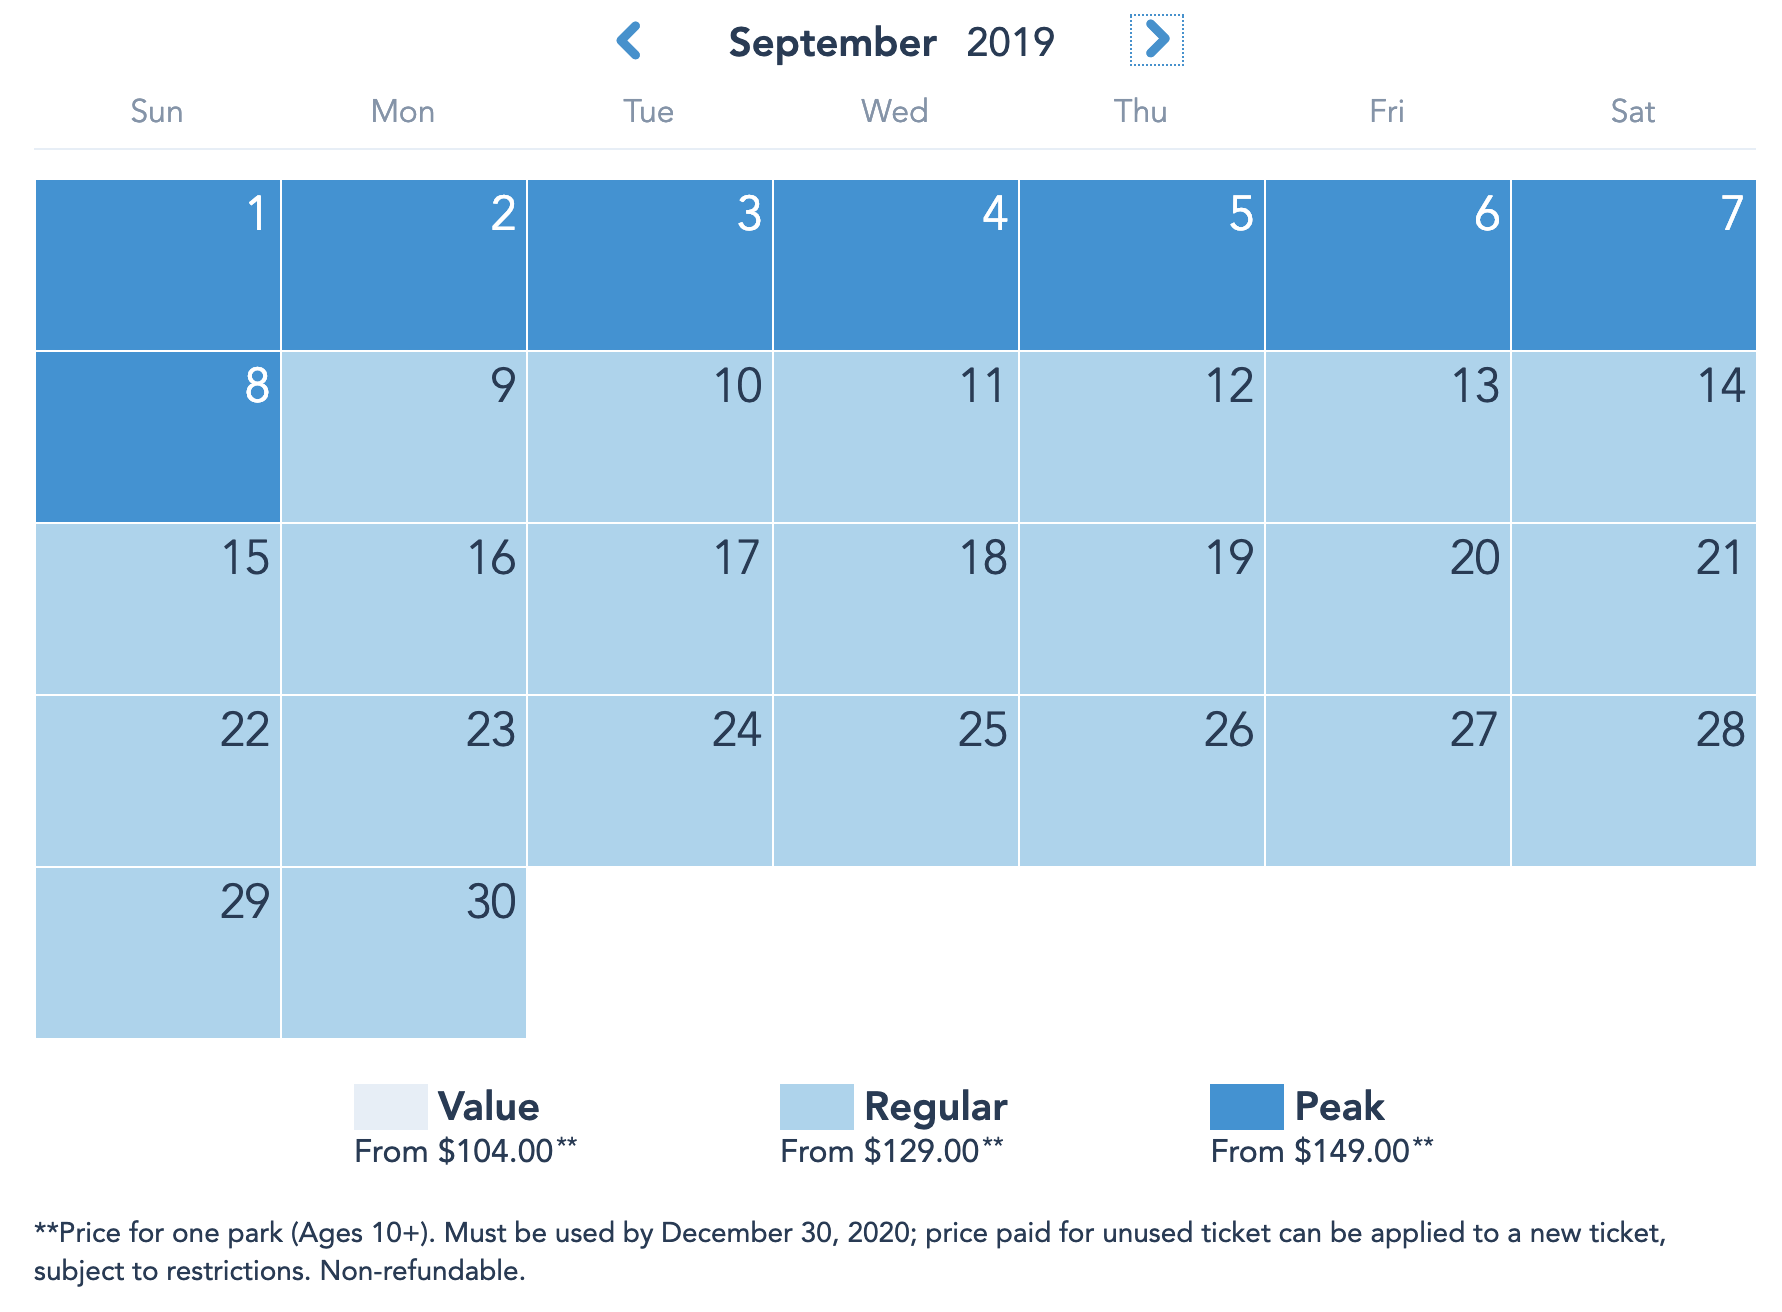 Disneyland Resort Prices - September